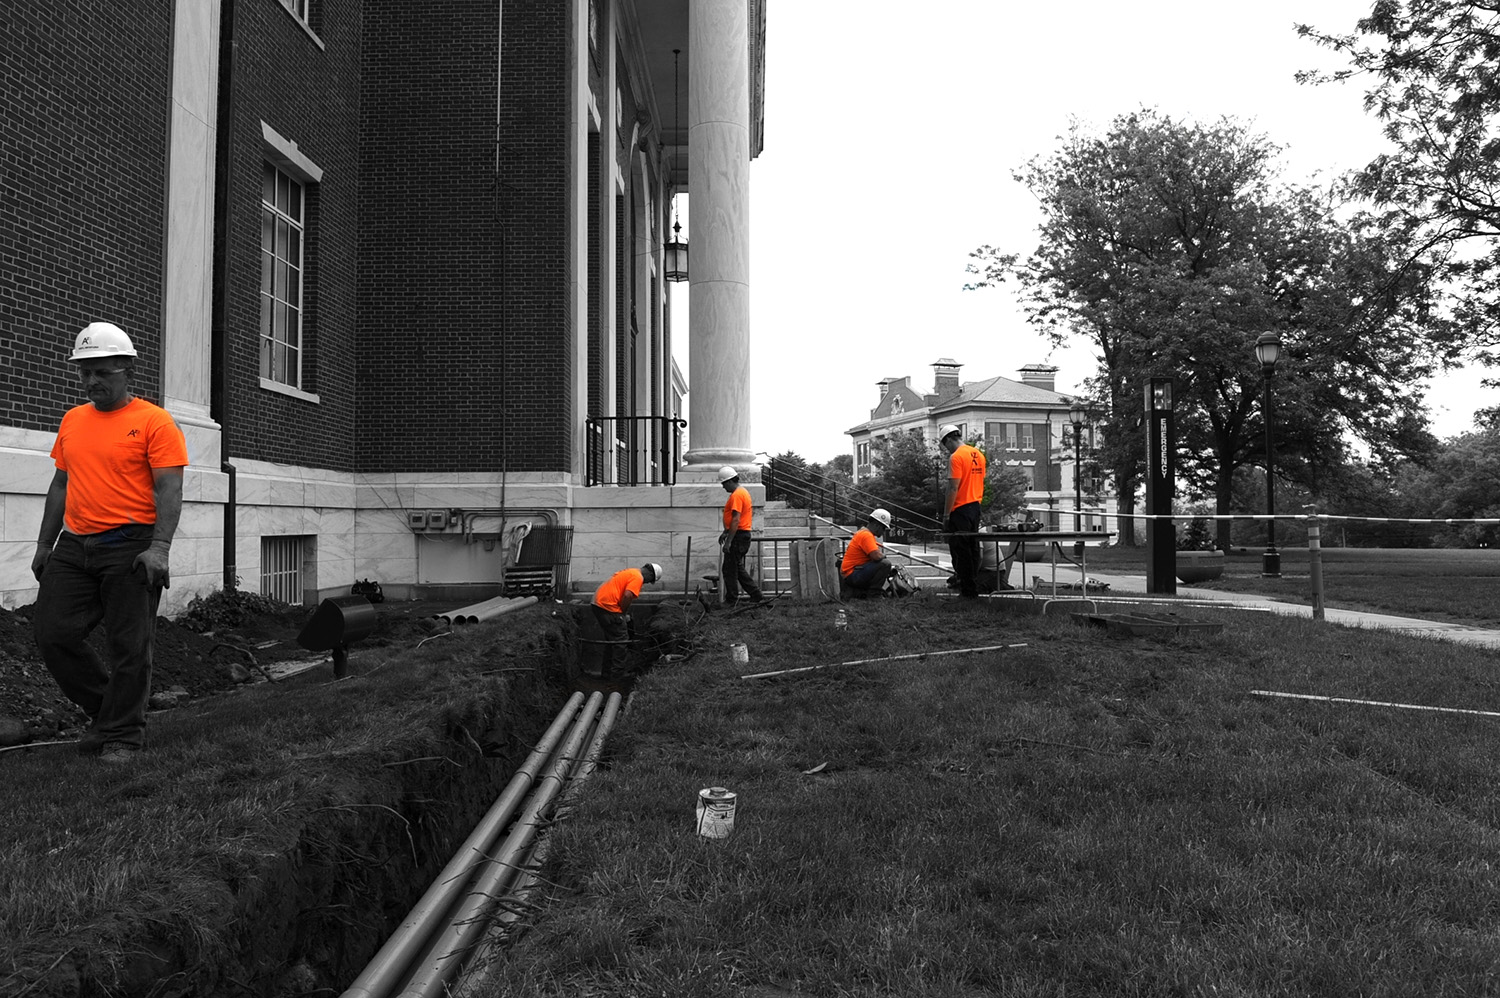 Transformer replacements are taking place at Olin Memorial Library.